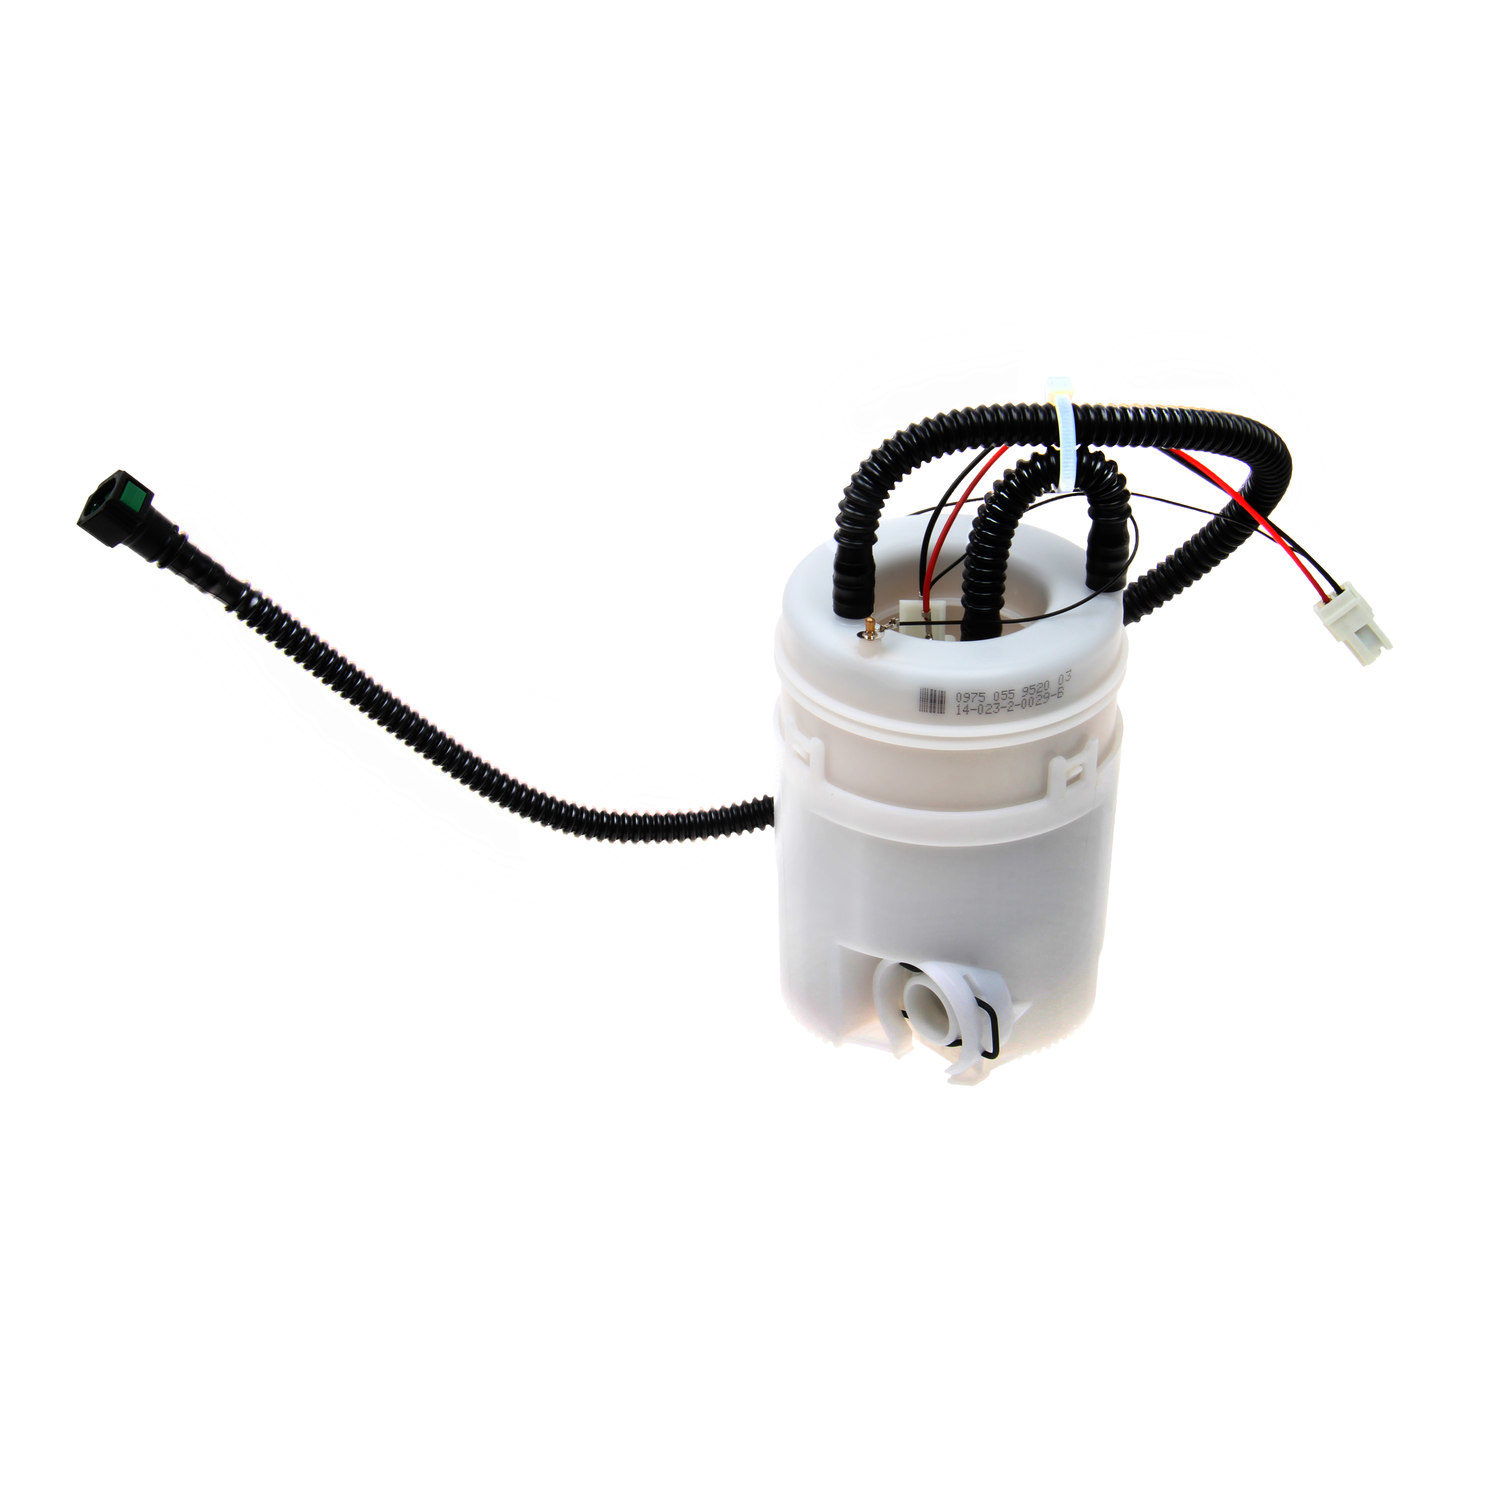 Land Rover Electric Fuel Pump FG104112B1